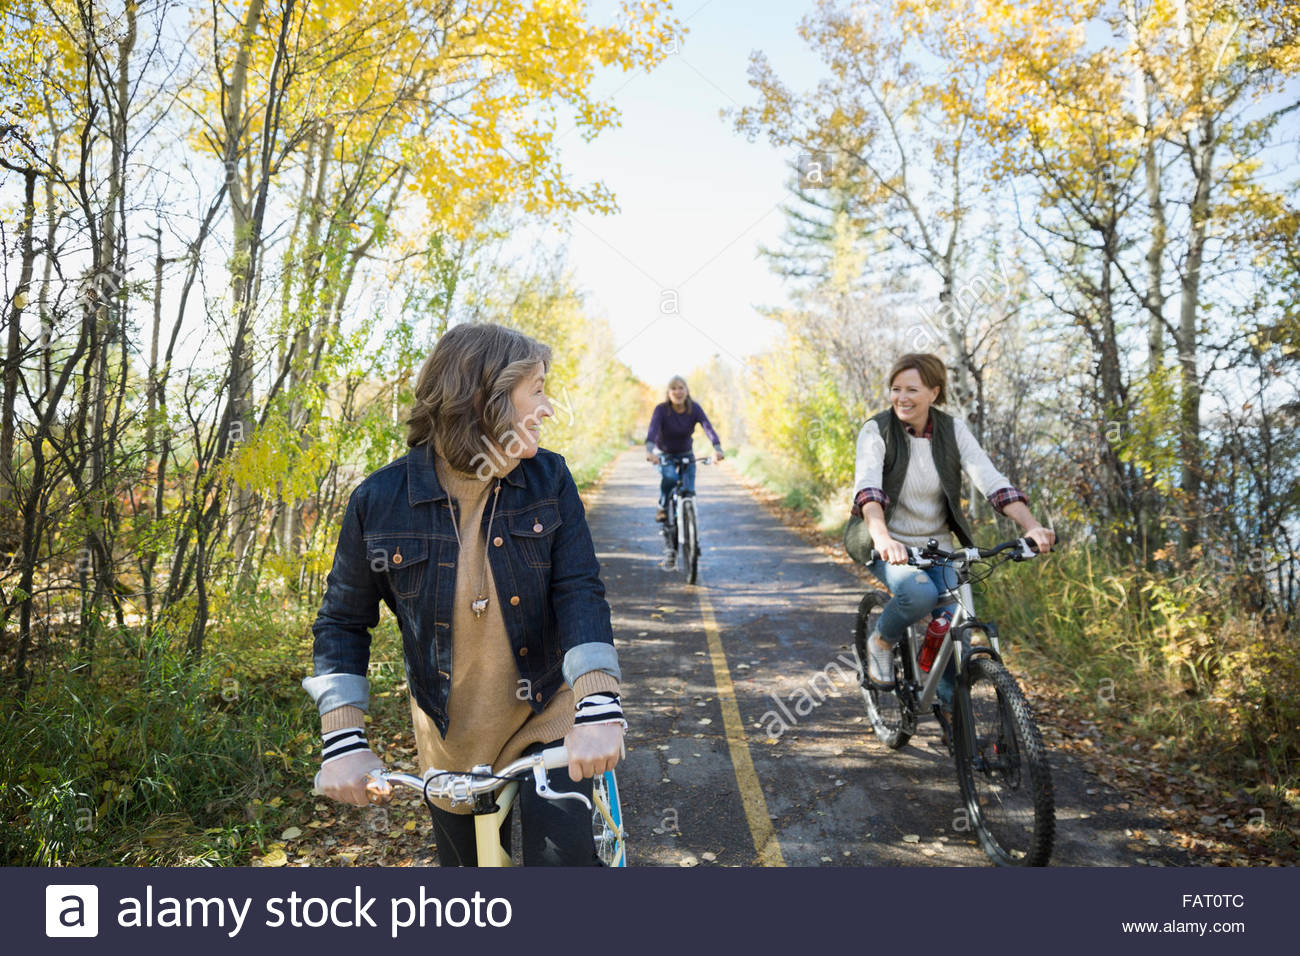 Friends bike riding on autumn path in park - Stock Image